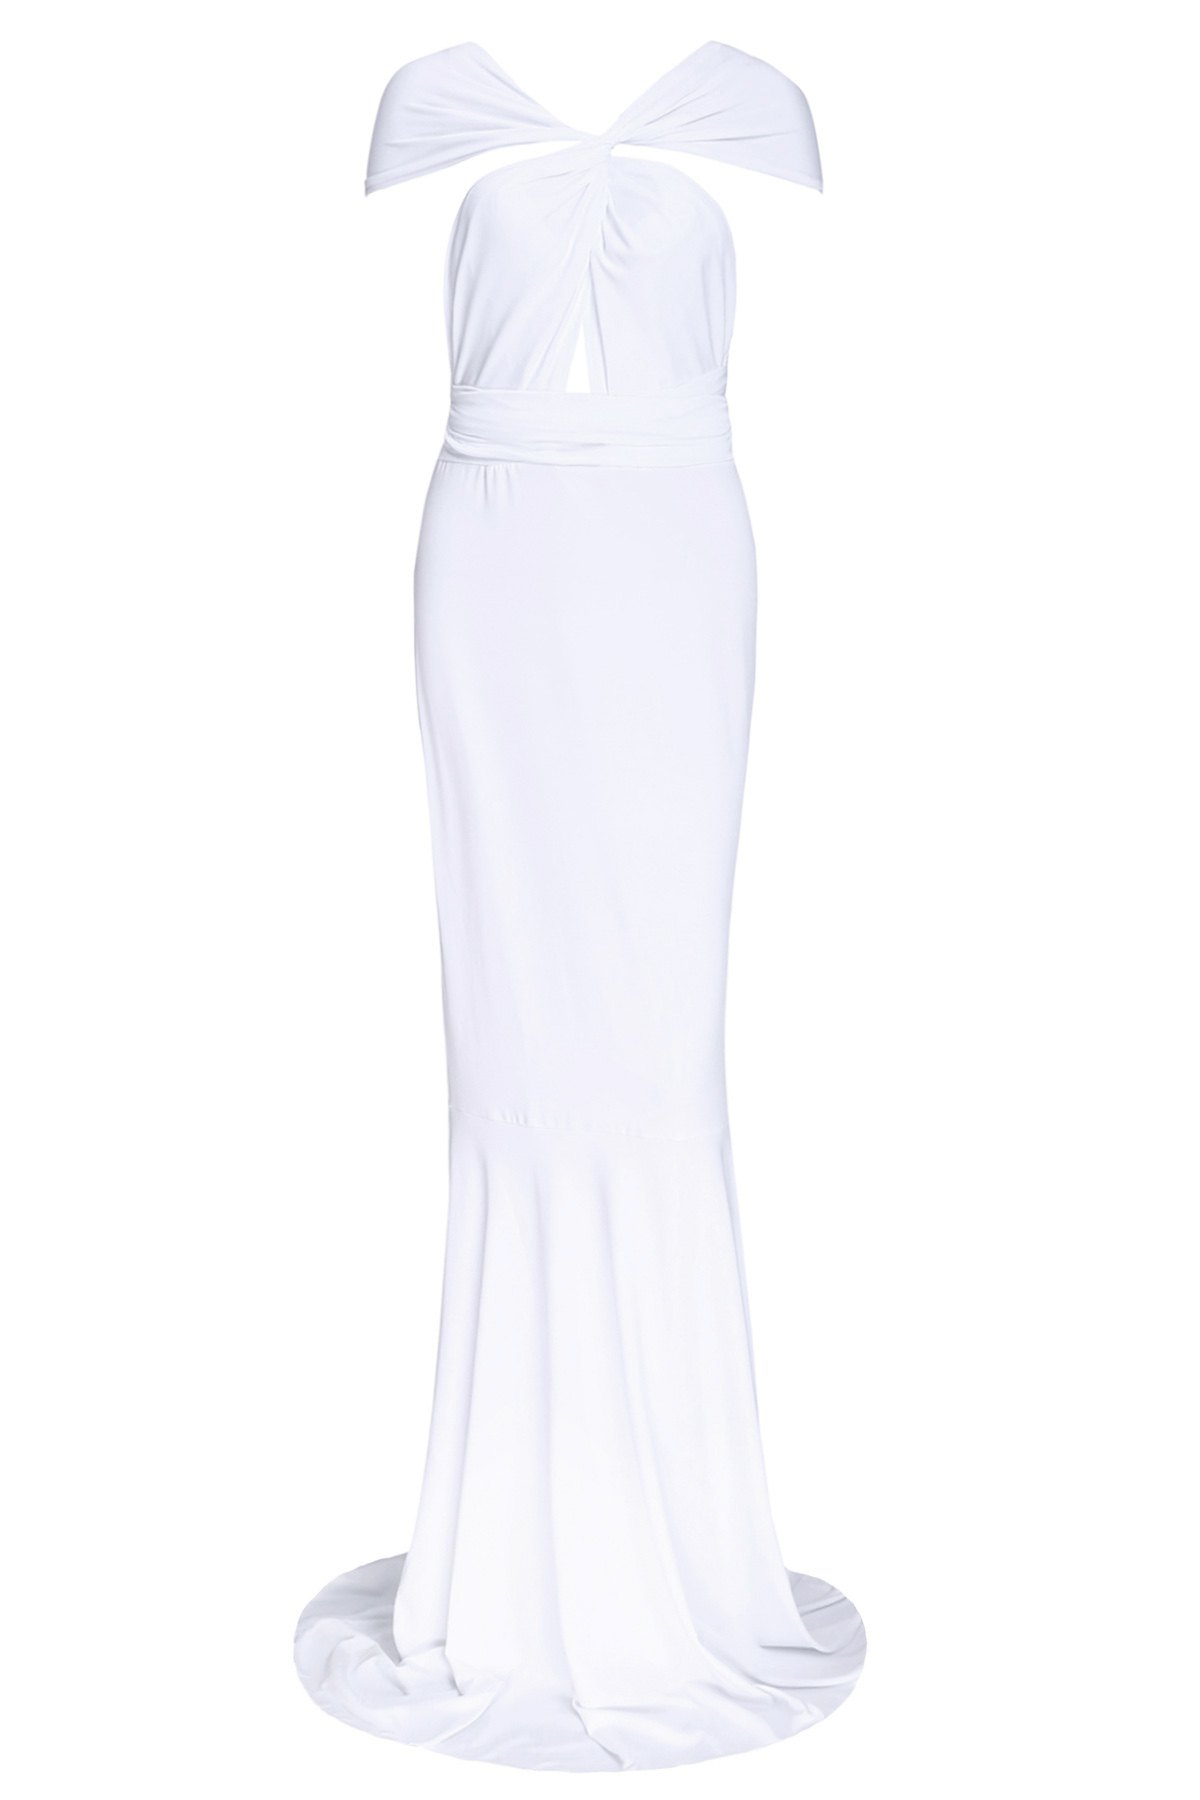 Sexy Women's Plunging Neck White Dress - WHITE S